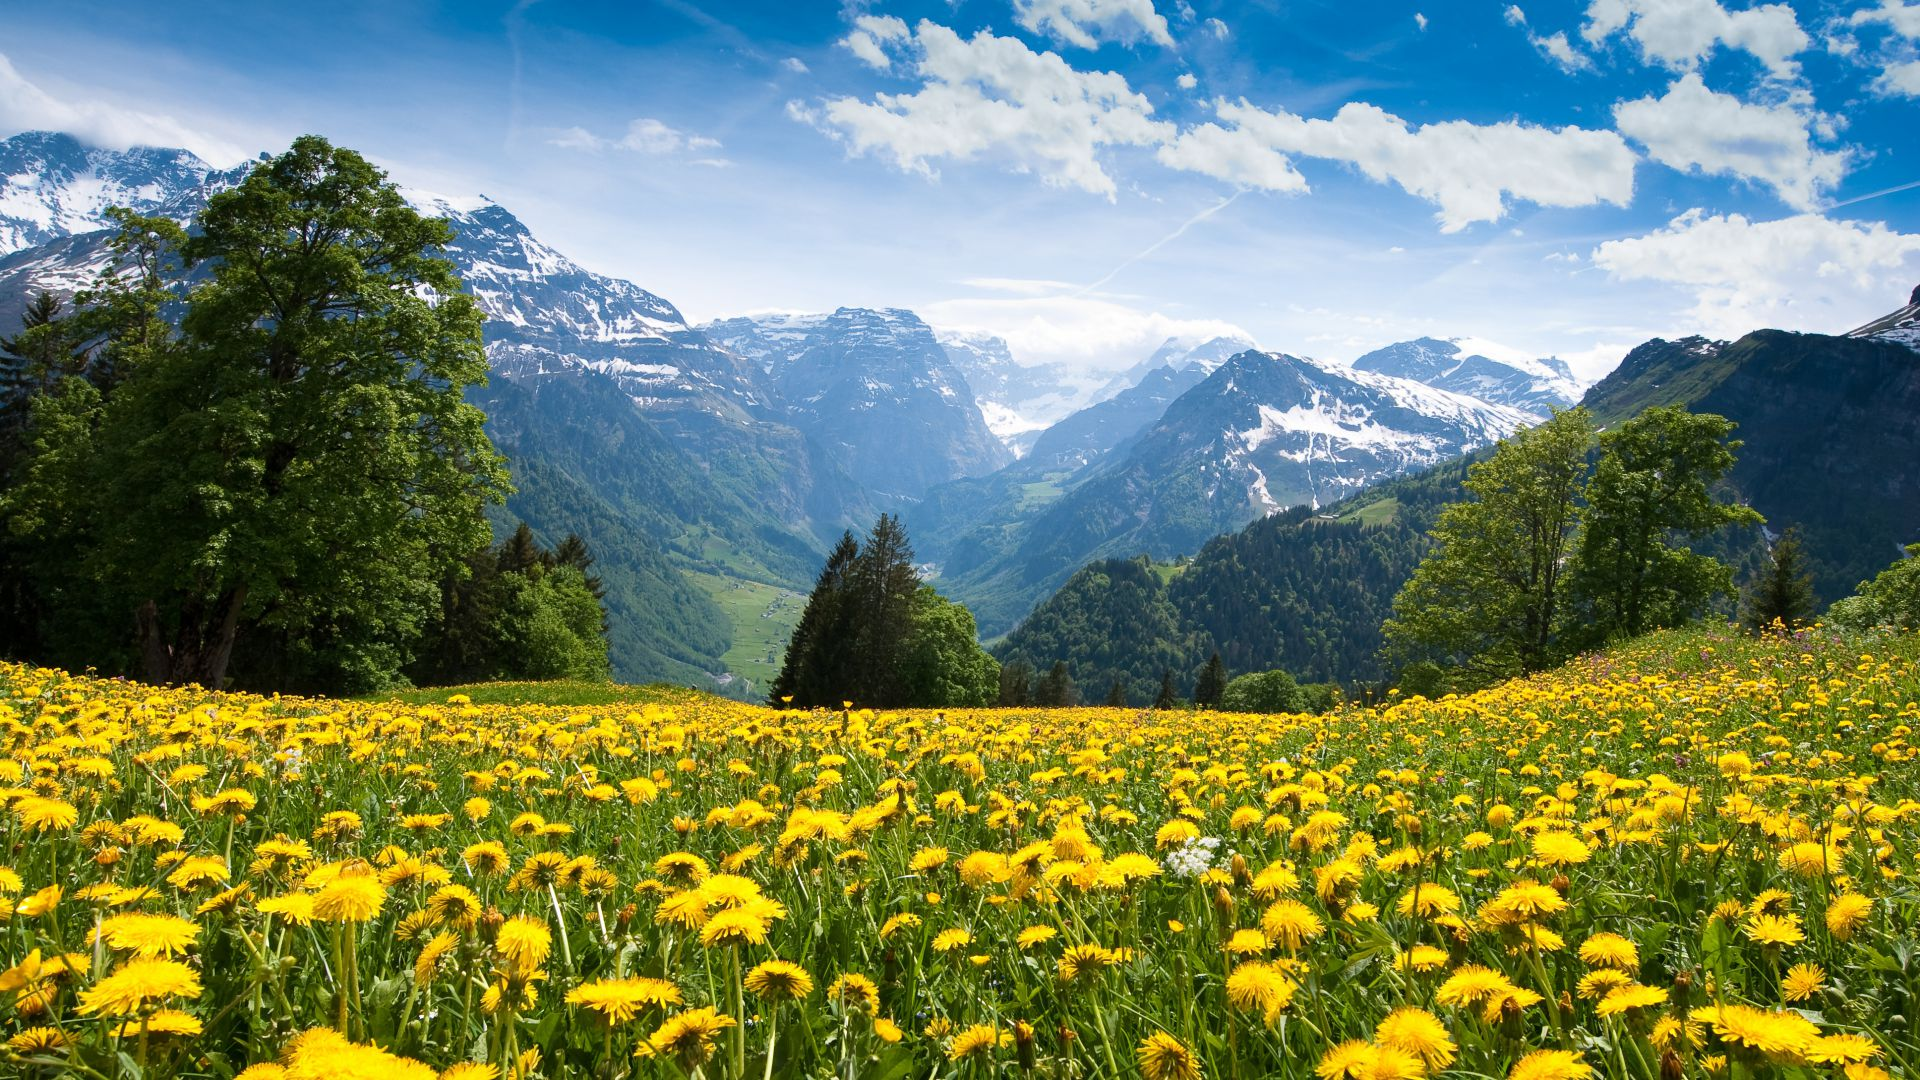 Альпы, Франция, горы, одуванчик, луга, небо, Alps, France, mountains, dandelion, meadows, sky